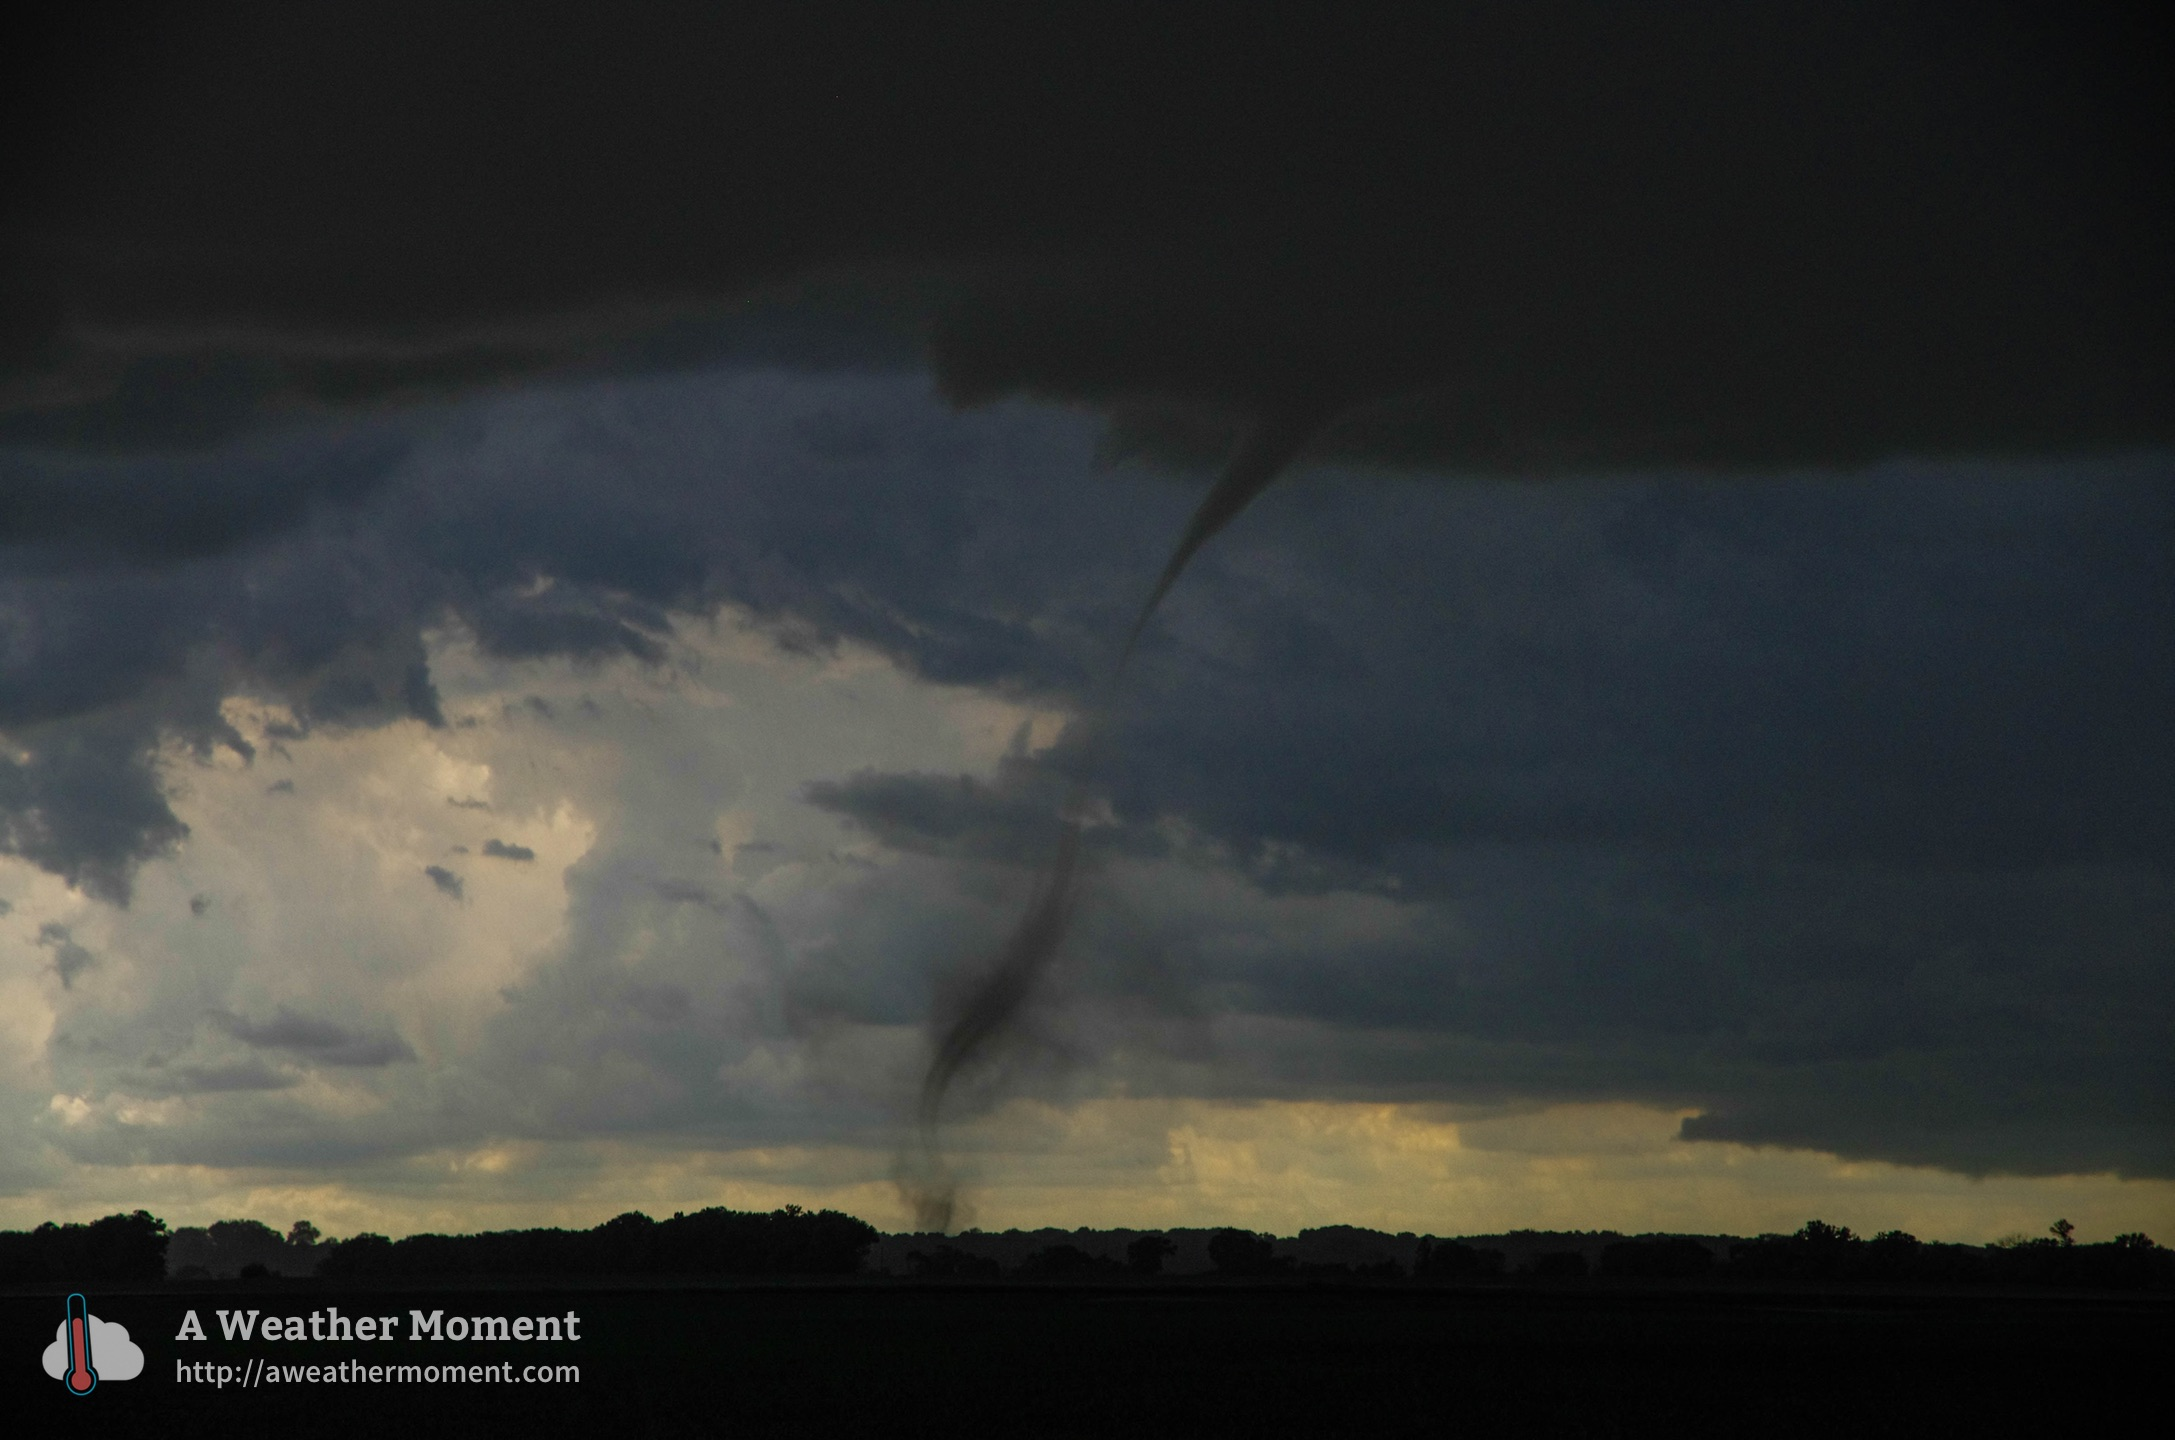 One of the rope tornadoes in ND observed near Pisek. (Source: Matt D)